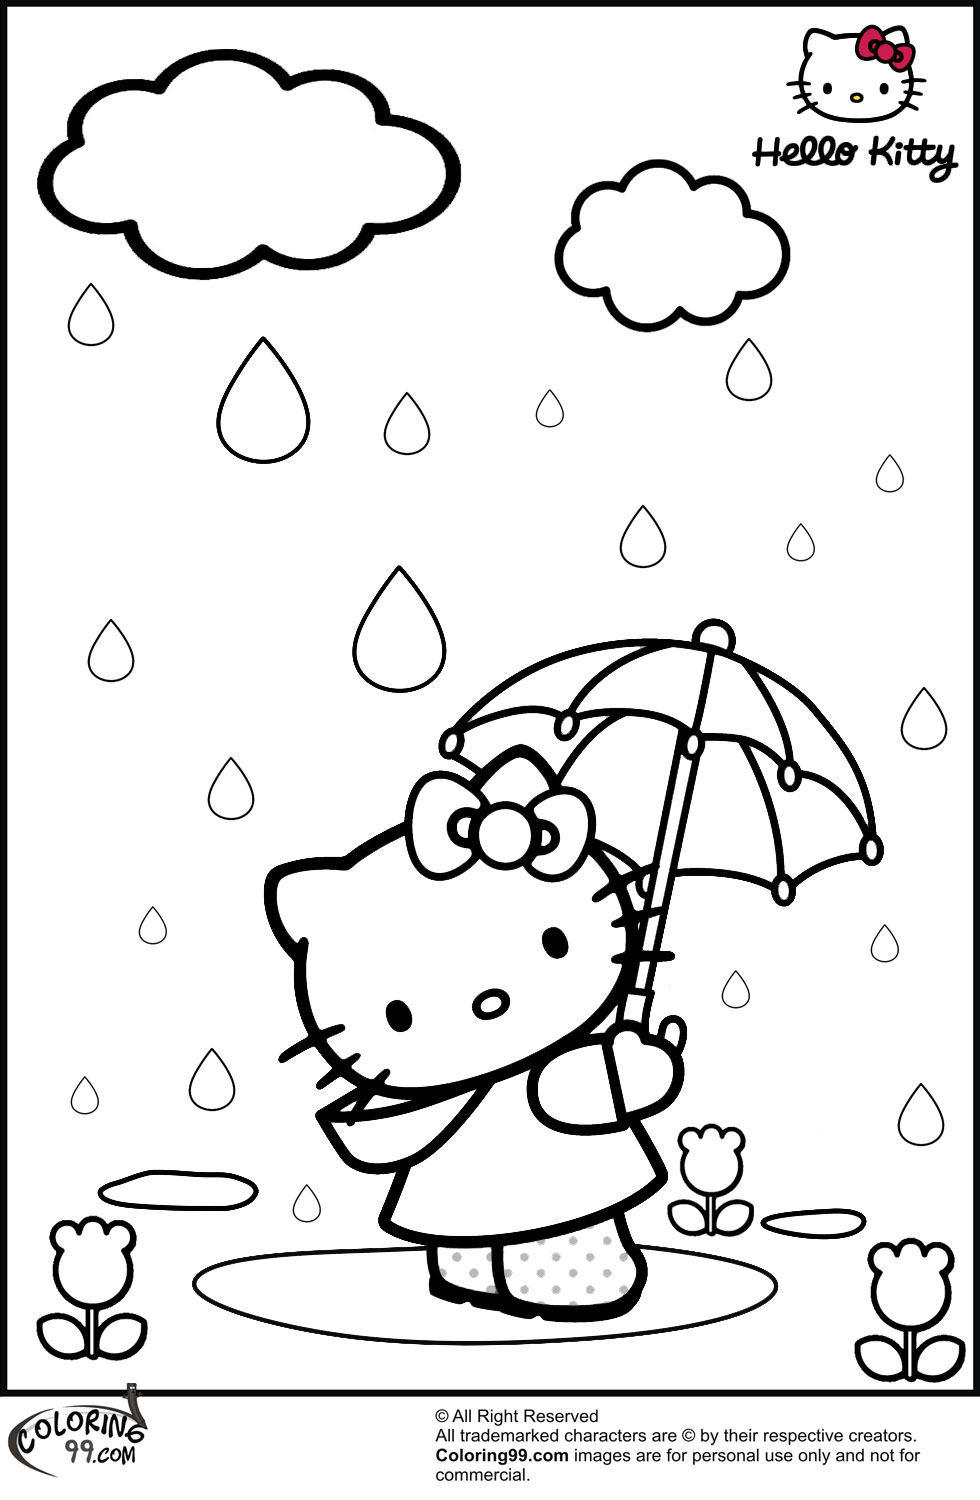 coloring hello kitty hello kitty coloring pages getcoloringpagescom coloring kitty hello